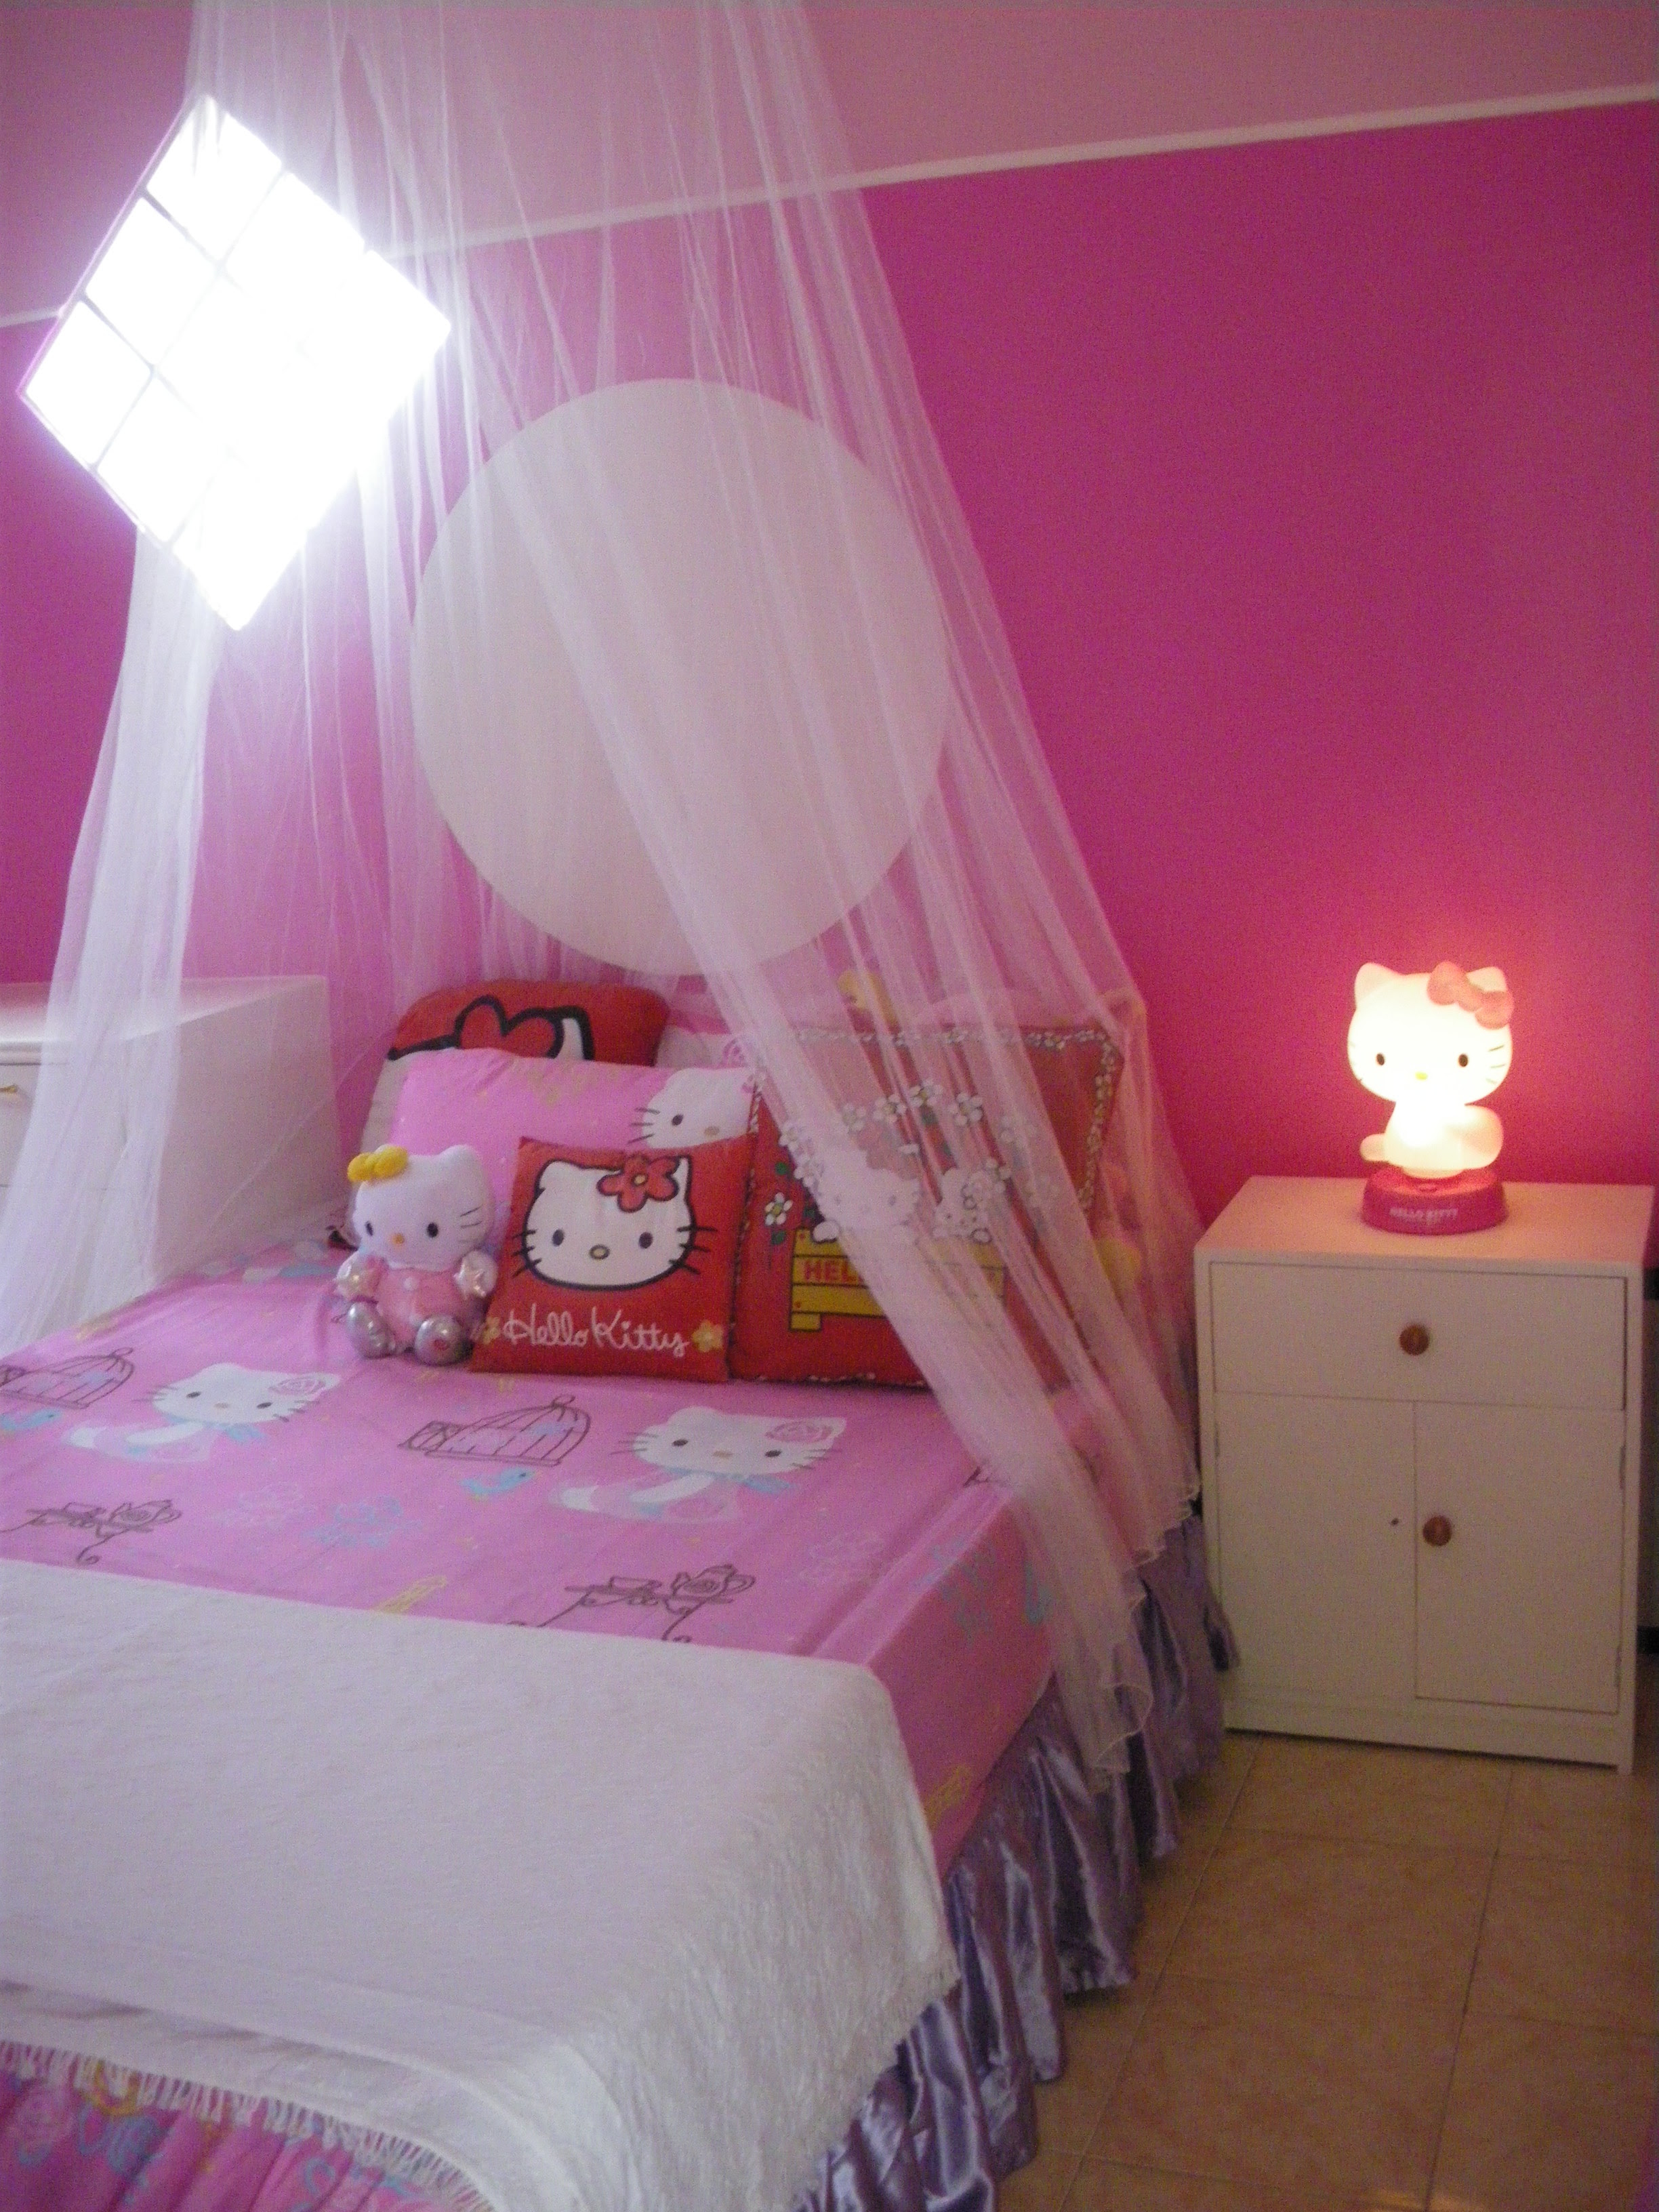 Hello Kitty Room Home Design And Decor Reviews,Rhode Island Beach Rentals Oceanfront